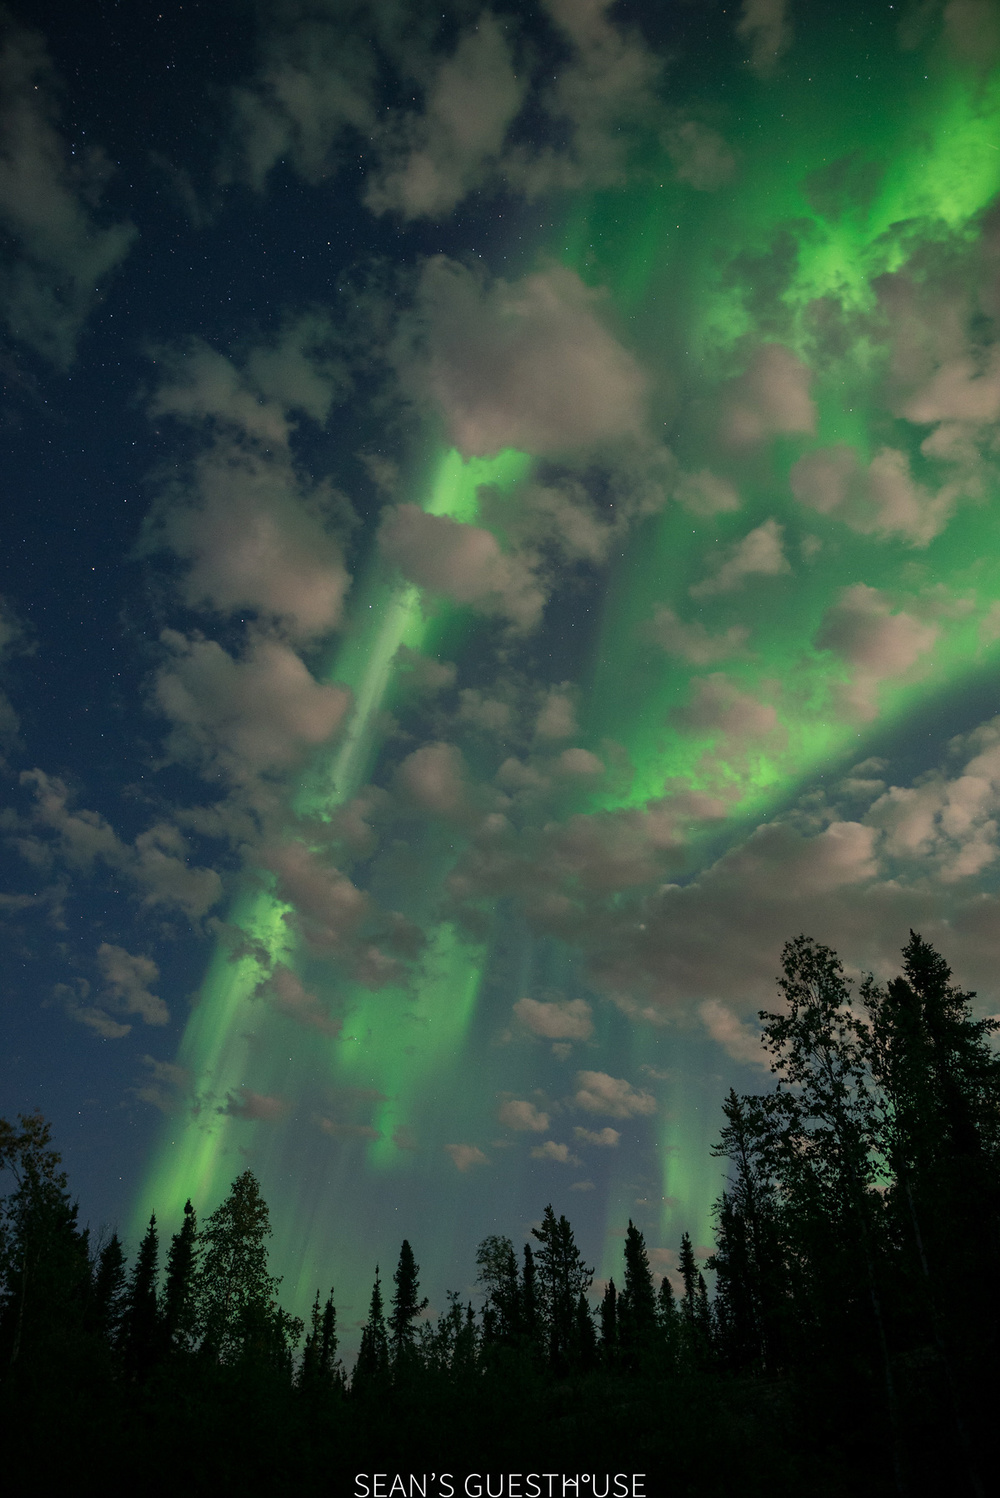 Sean's Guesthouse - Yellowknife Northern Lights Accommodation & Tours - 3.jpg